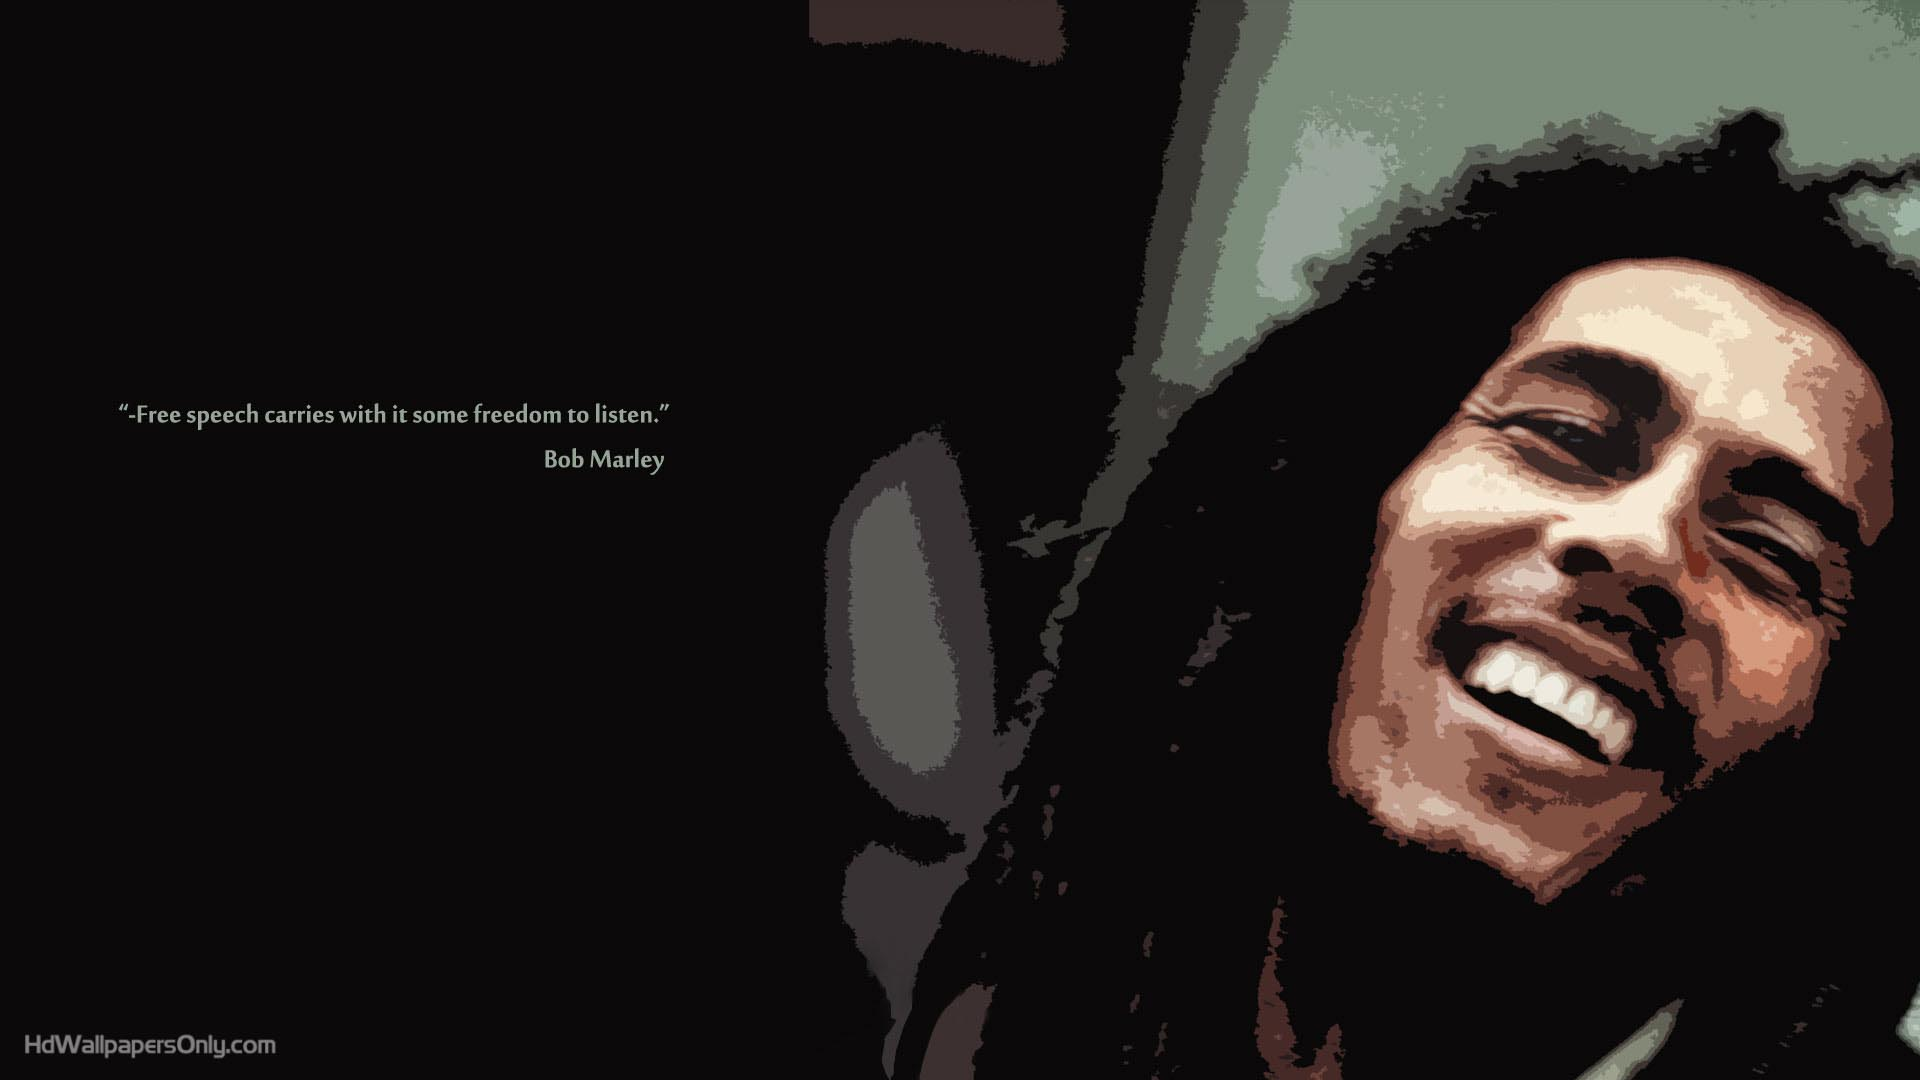 Wallpapers For > Bob Marley Wallpaper Widescreen